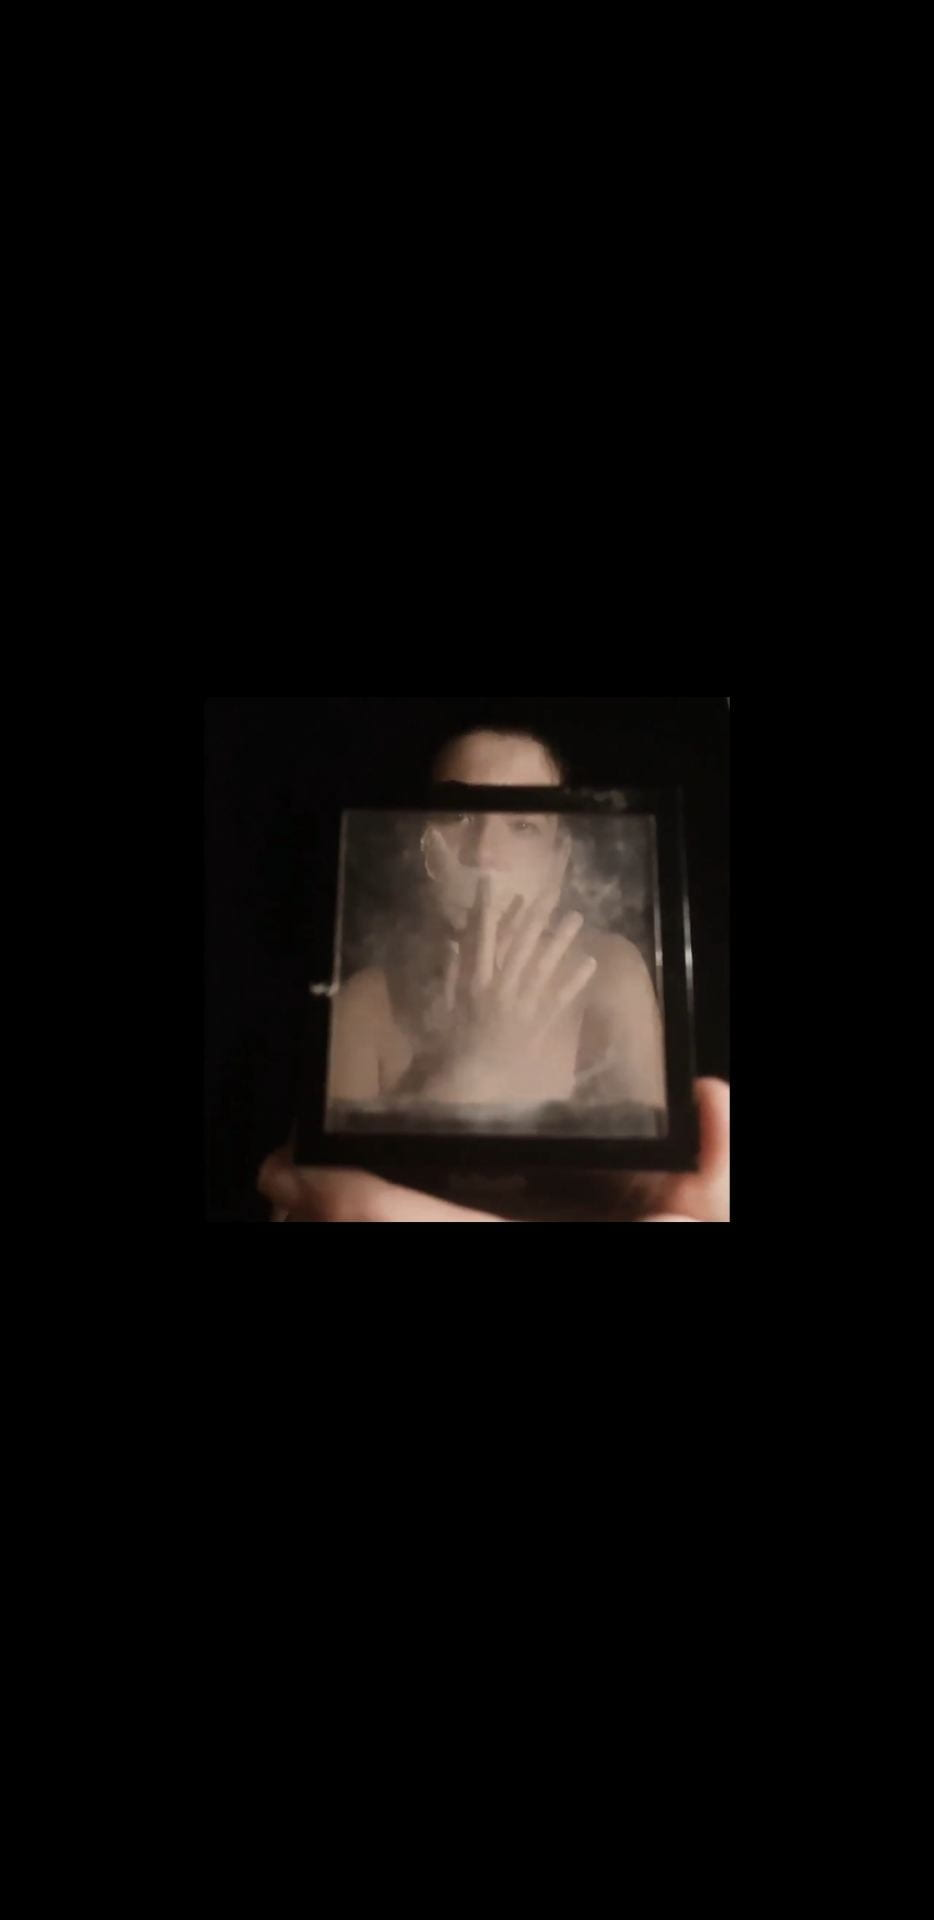 Someone holding their hand in front of their face, shot through a piece of glass.